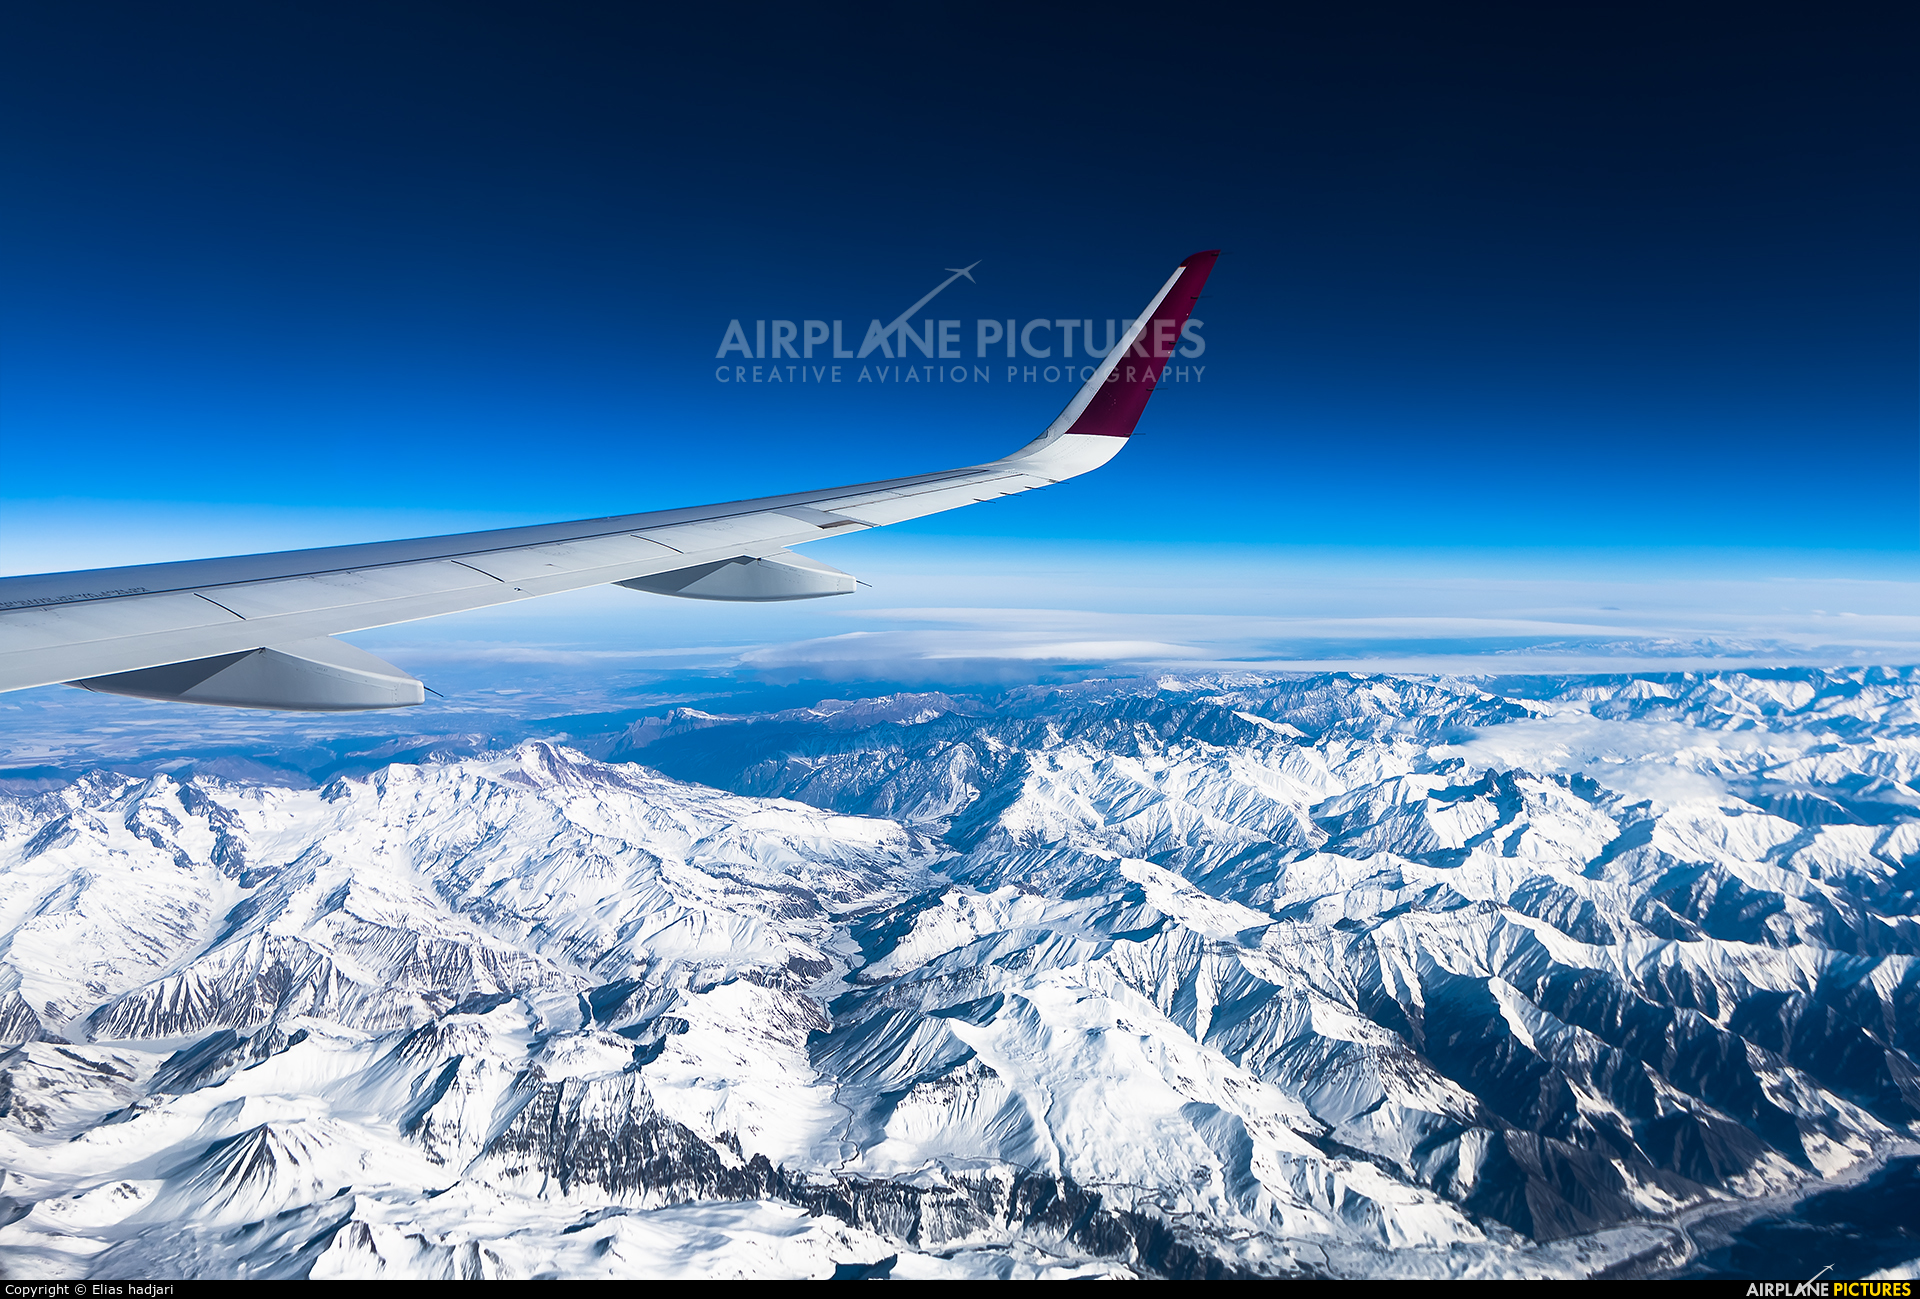 Qatar Airways A7-AHW aircraft at In Flight - Iran